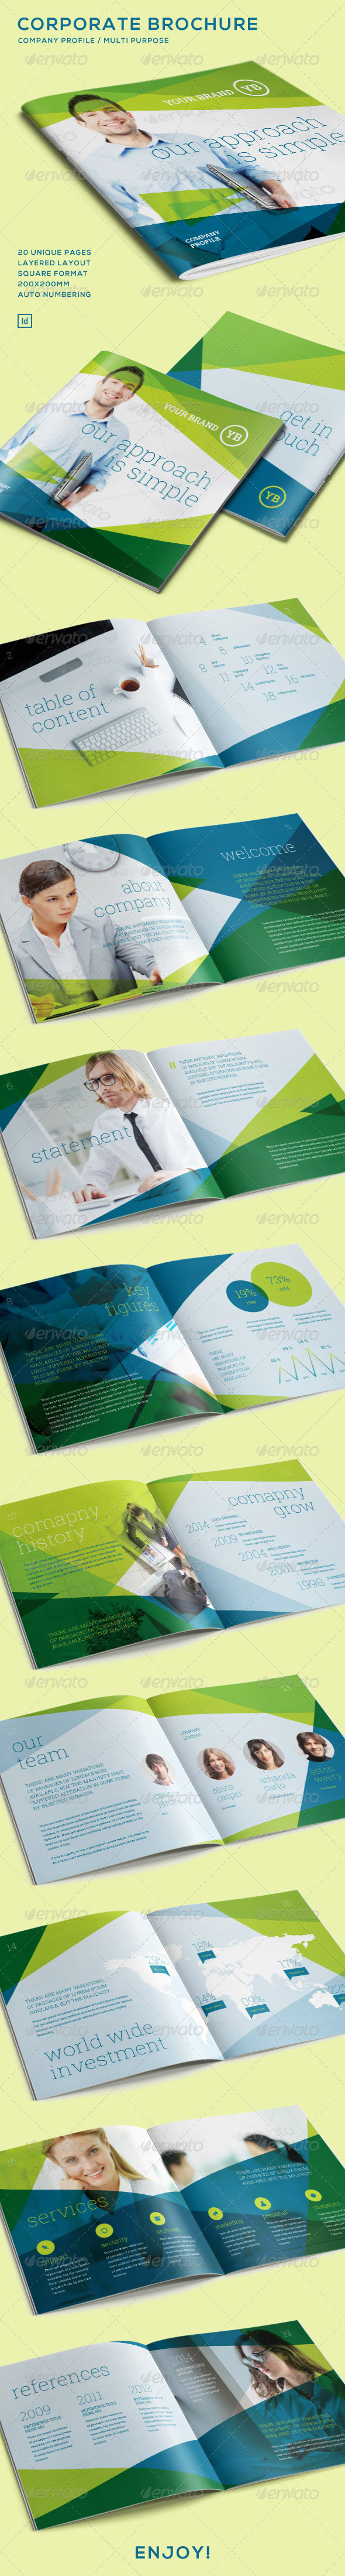 Corporate Brochure - Company Profile - Corporate Brochures